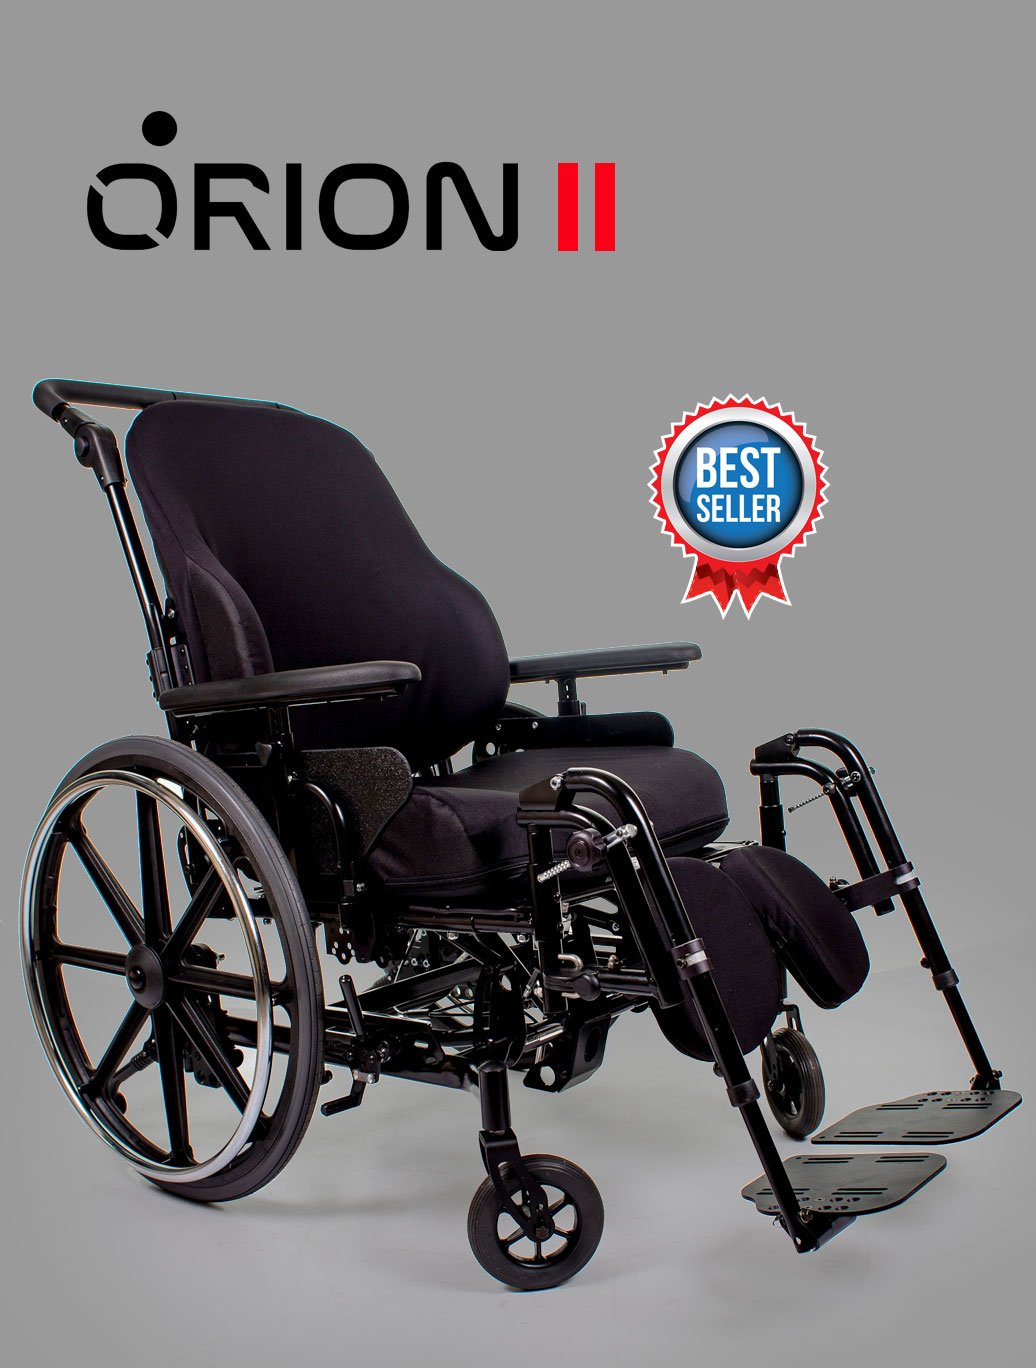 orion II wheelchair best seller